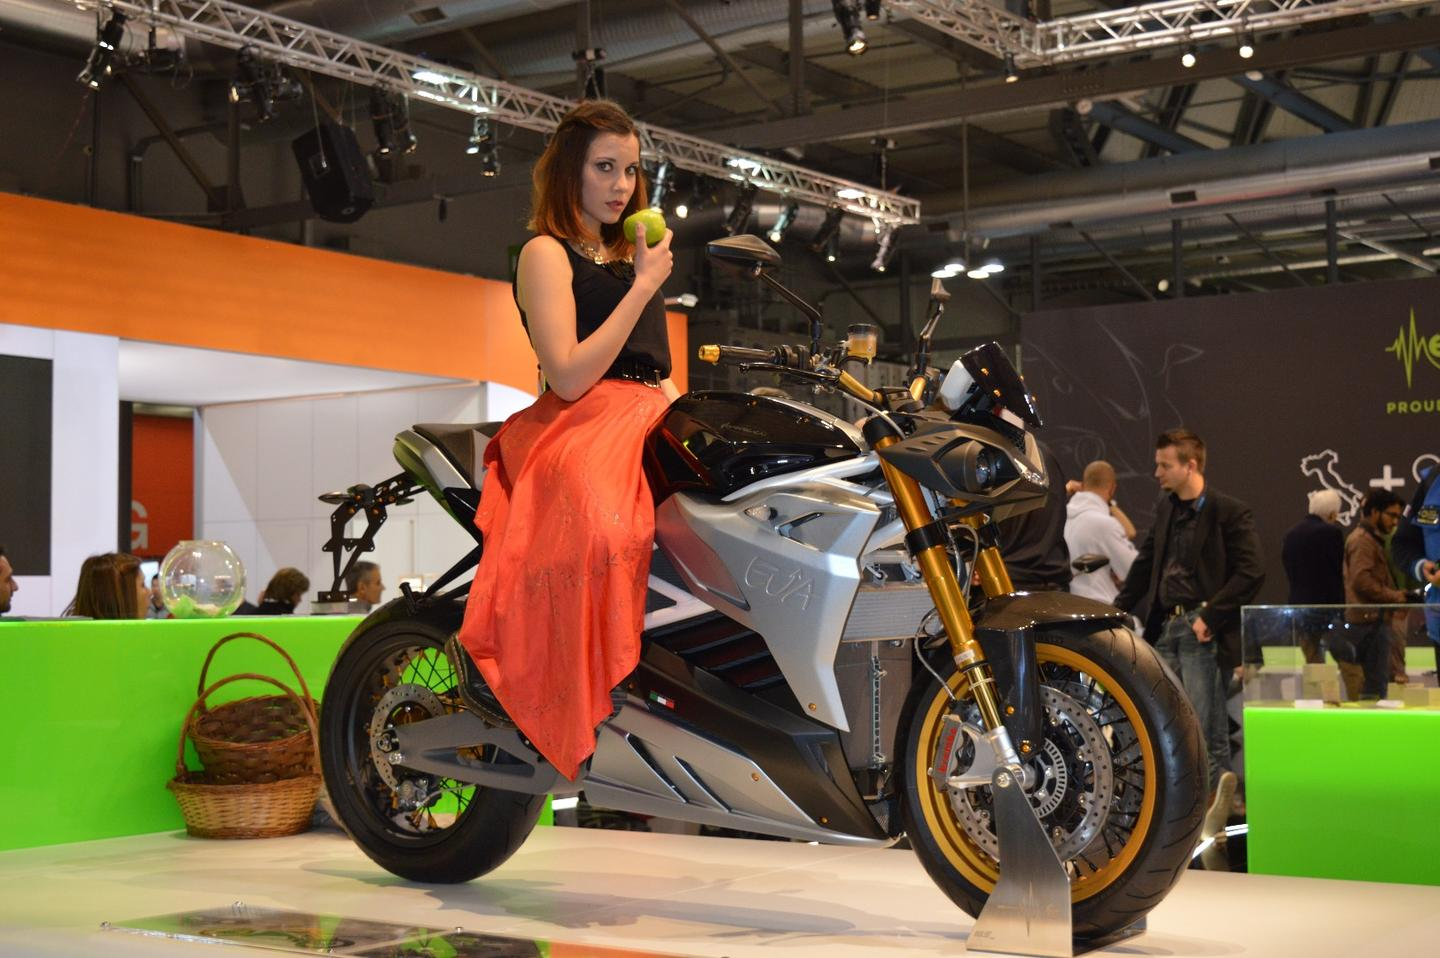 The Energica Motor Company is Italy's first manufacturer of electric performance bikes and Eva is its second model